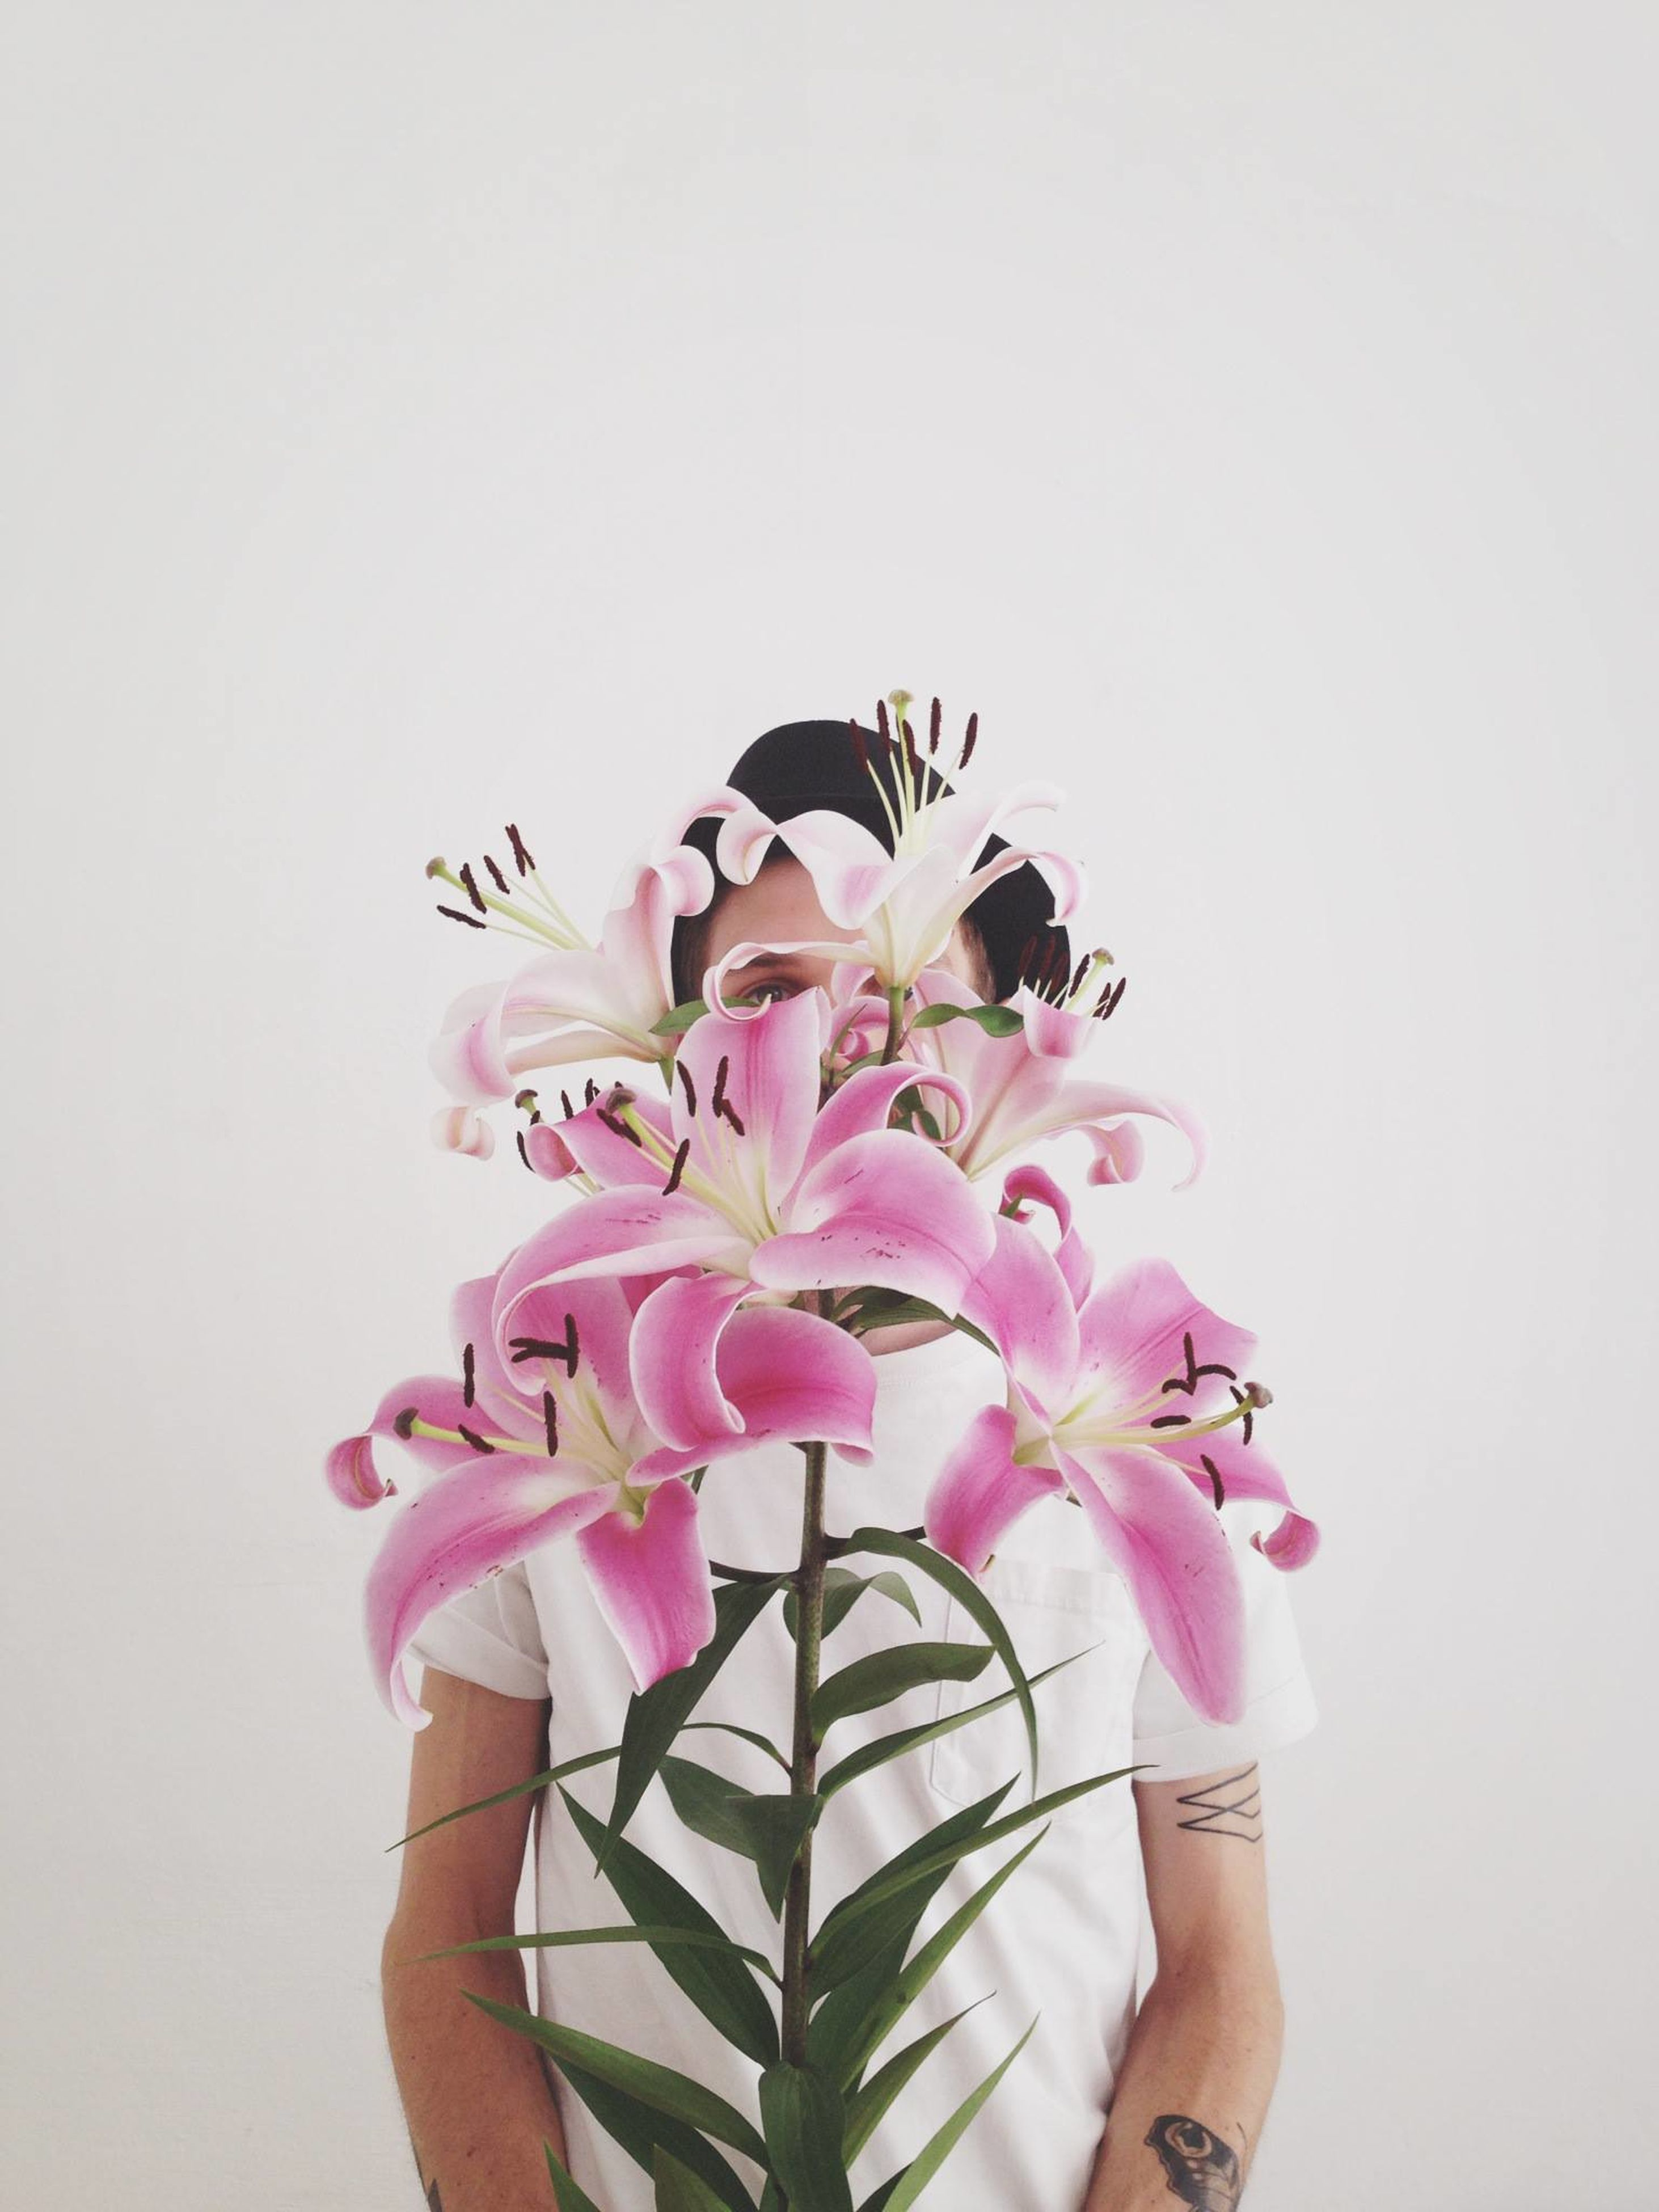 flower, studio shot, white background, one person, pink color, human body part, human hand, close-up, real people, nature, indoors, day, flower head, freshness, people